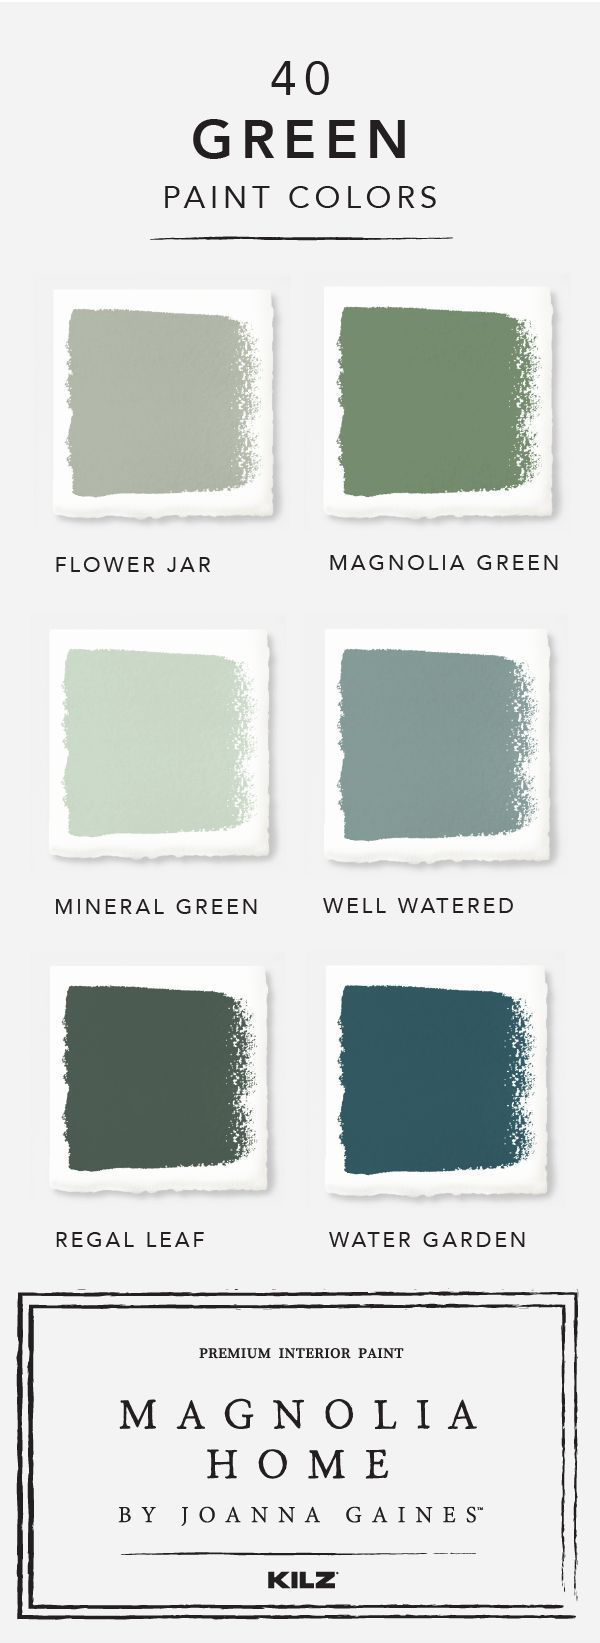 8 Surprising Diy Ideas Interior Painting Earth Tones Interior Painting Tips Colour Palettes Inte Magnolia Homes Paint Green Paint Colors Paint Colors For Home